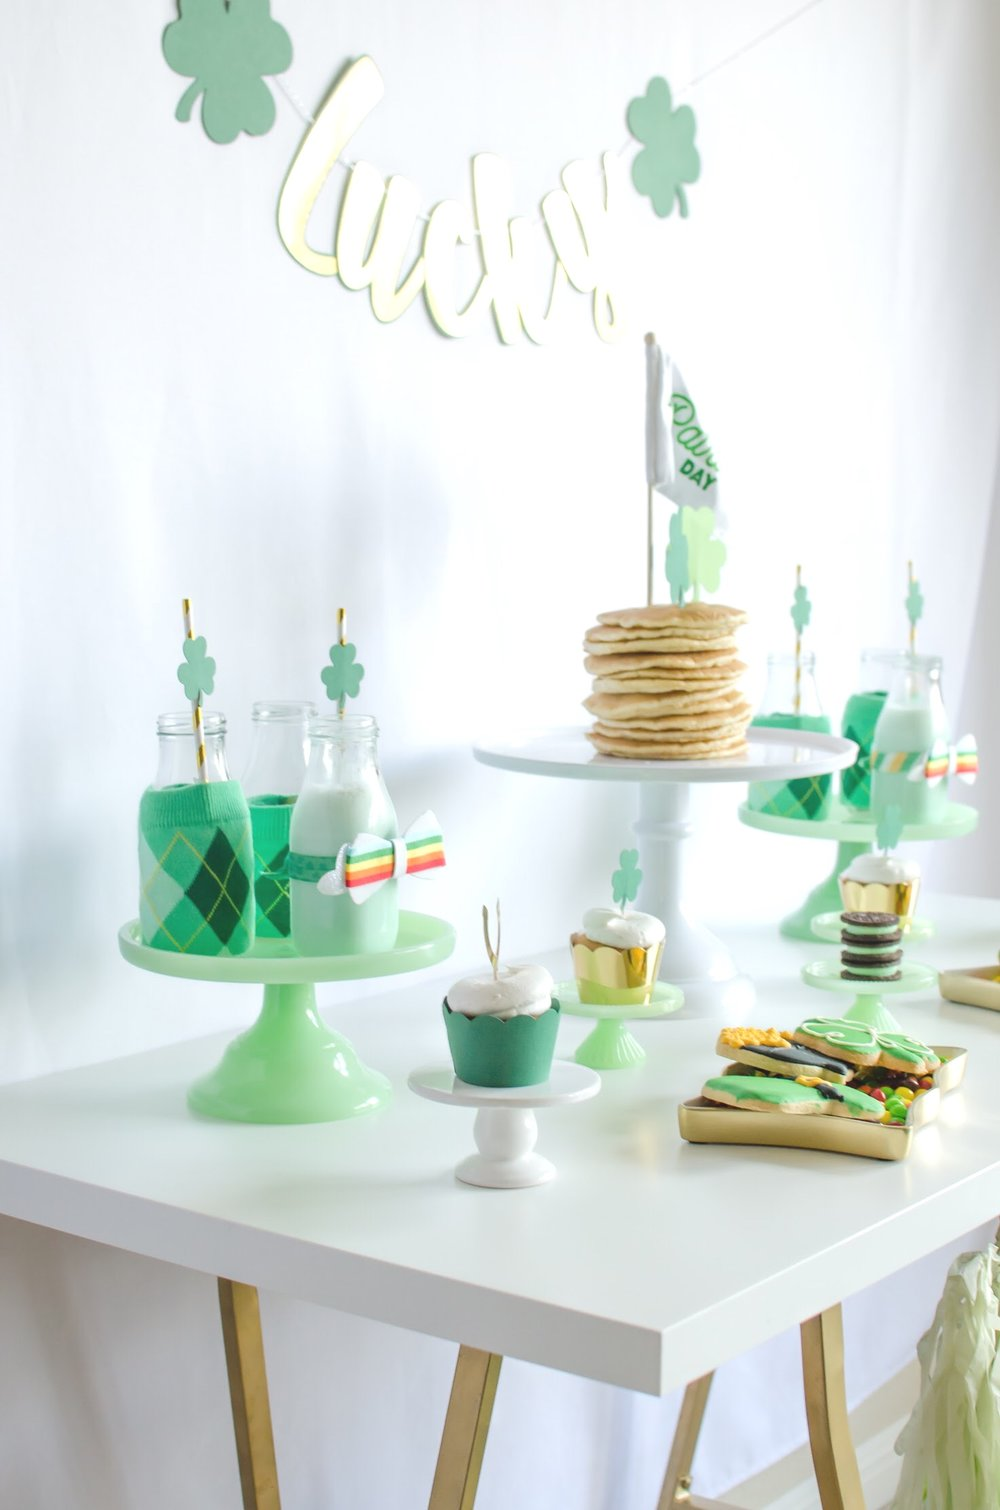 Love this St. Patrick's Day breakfast party from Mint Event Design www.minteventdesign.com #partyideas #partydecorations #saintpatricksday #stpatricksday #breakfastfood